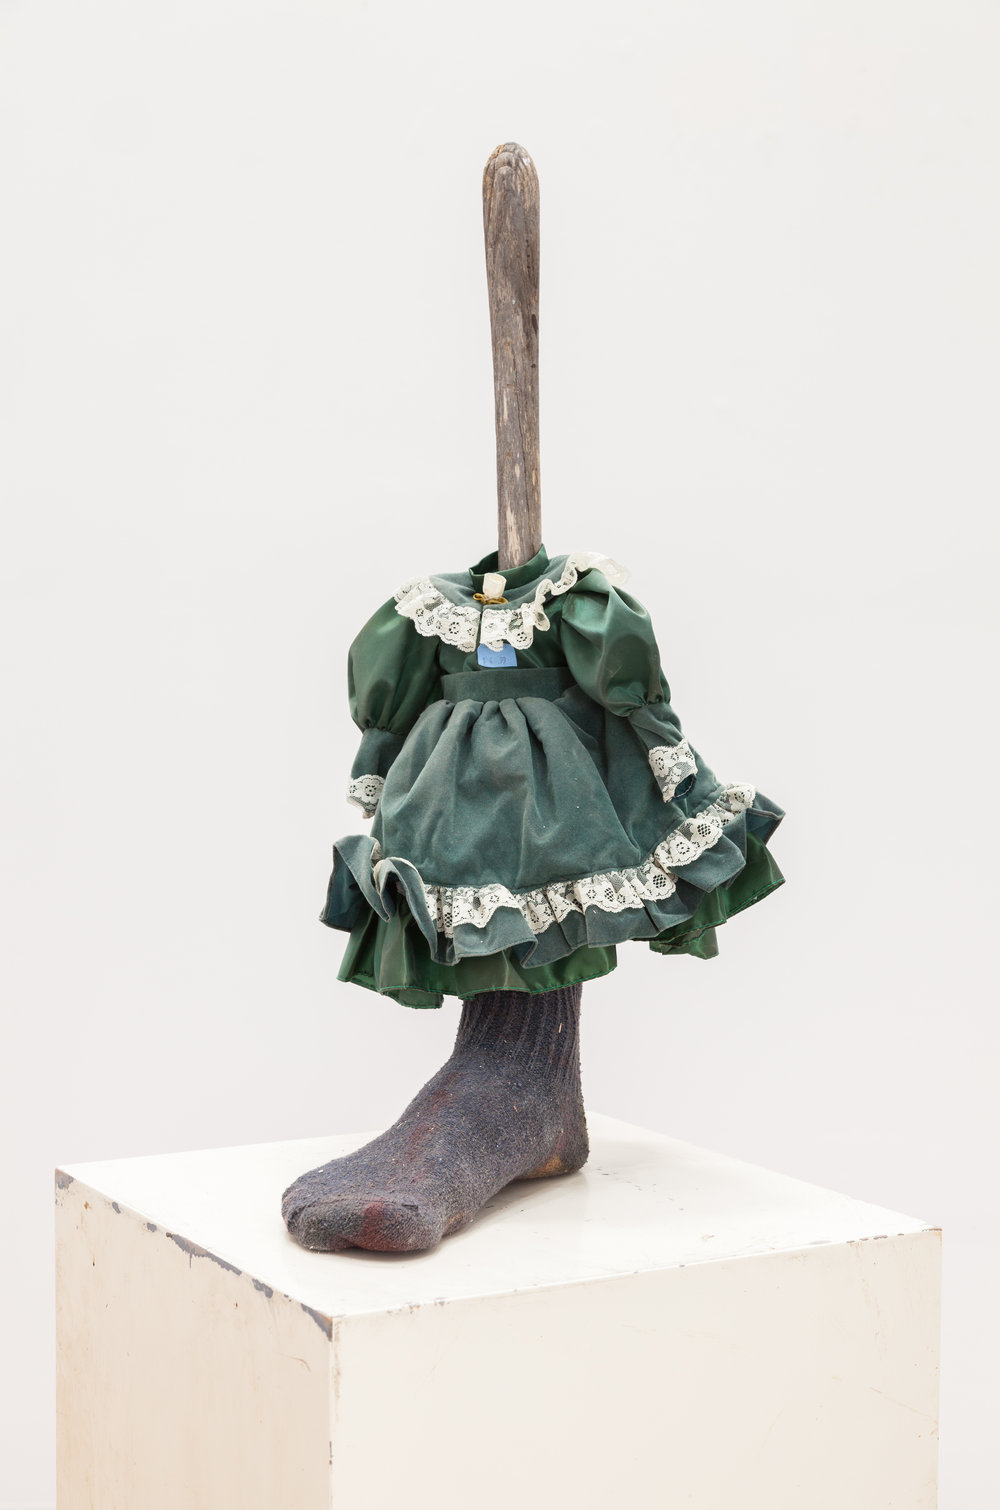 Matthew Savitsky, Angie Jennings,  Doll , 2017, plaster, sock, doll's dress, broom handle, 28 × 12 × 10 in